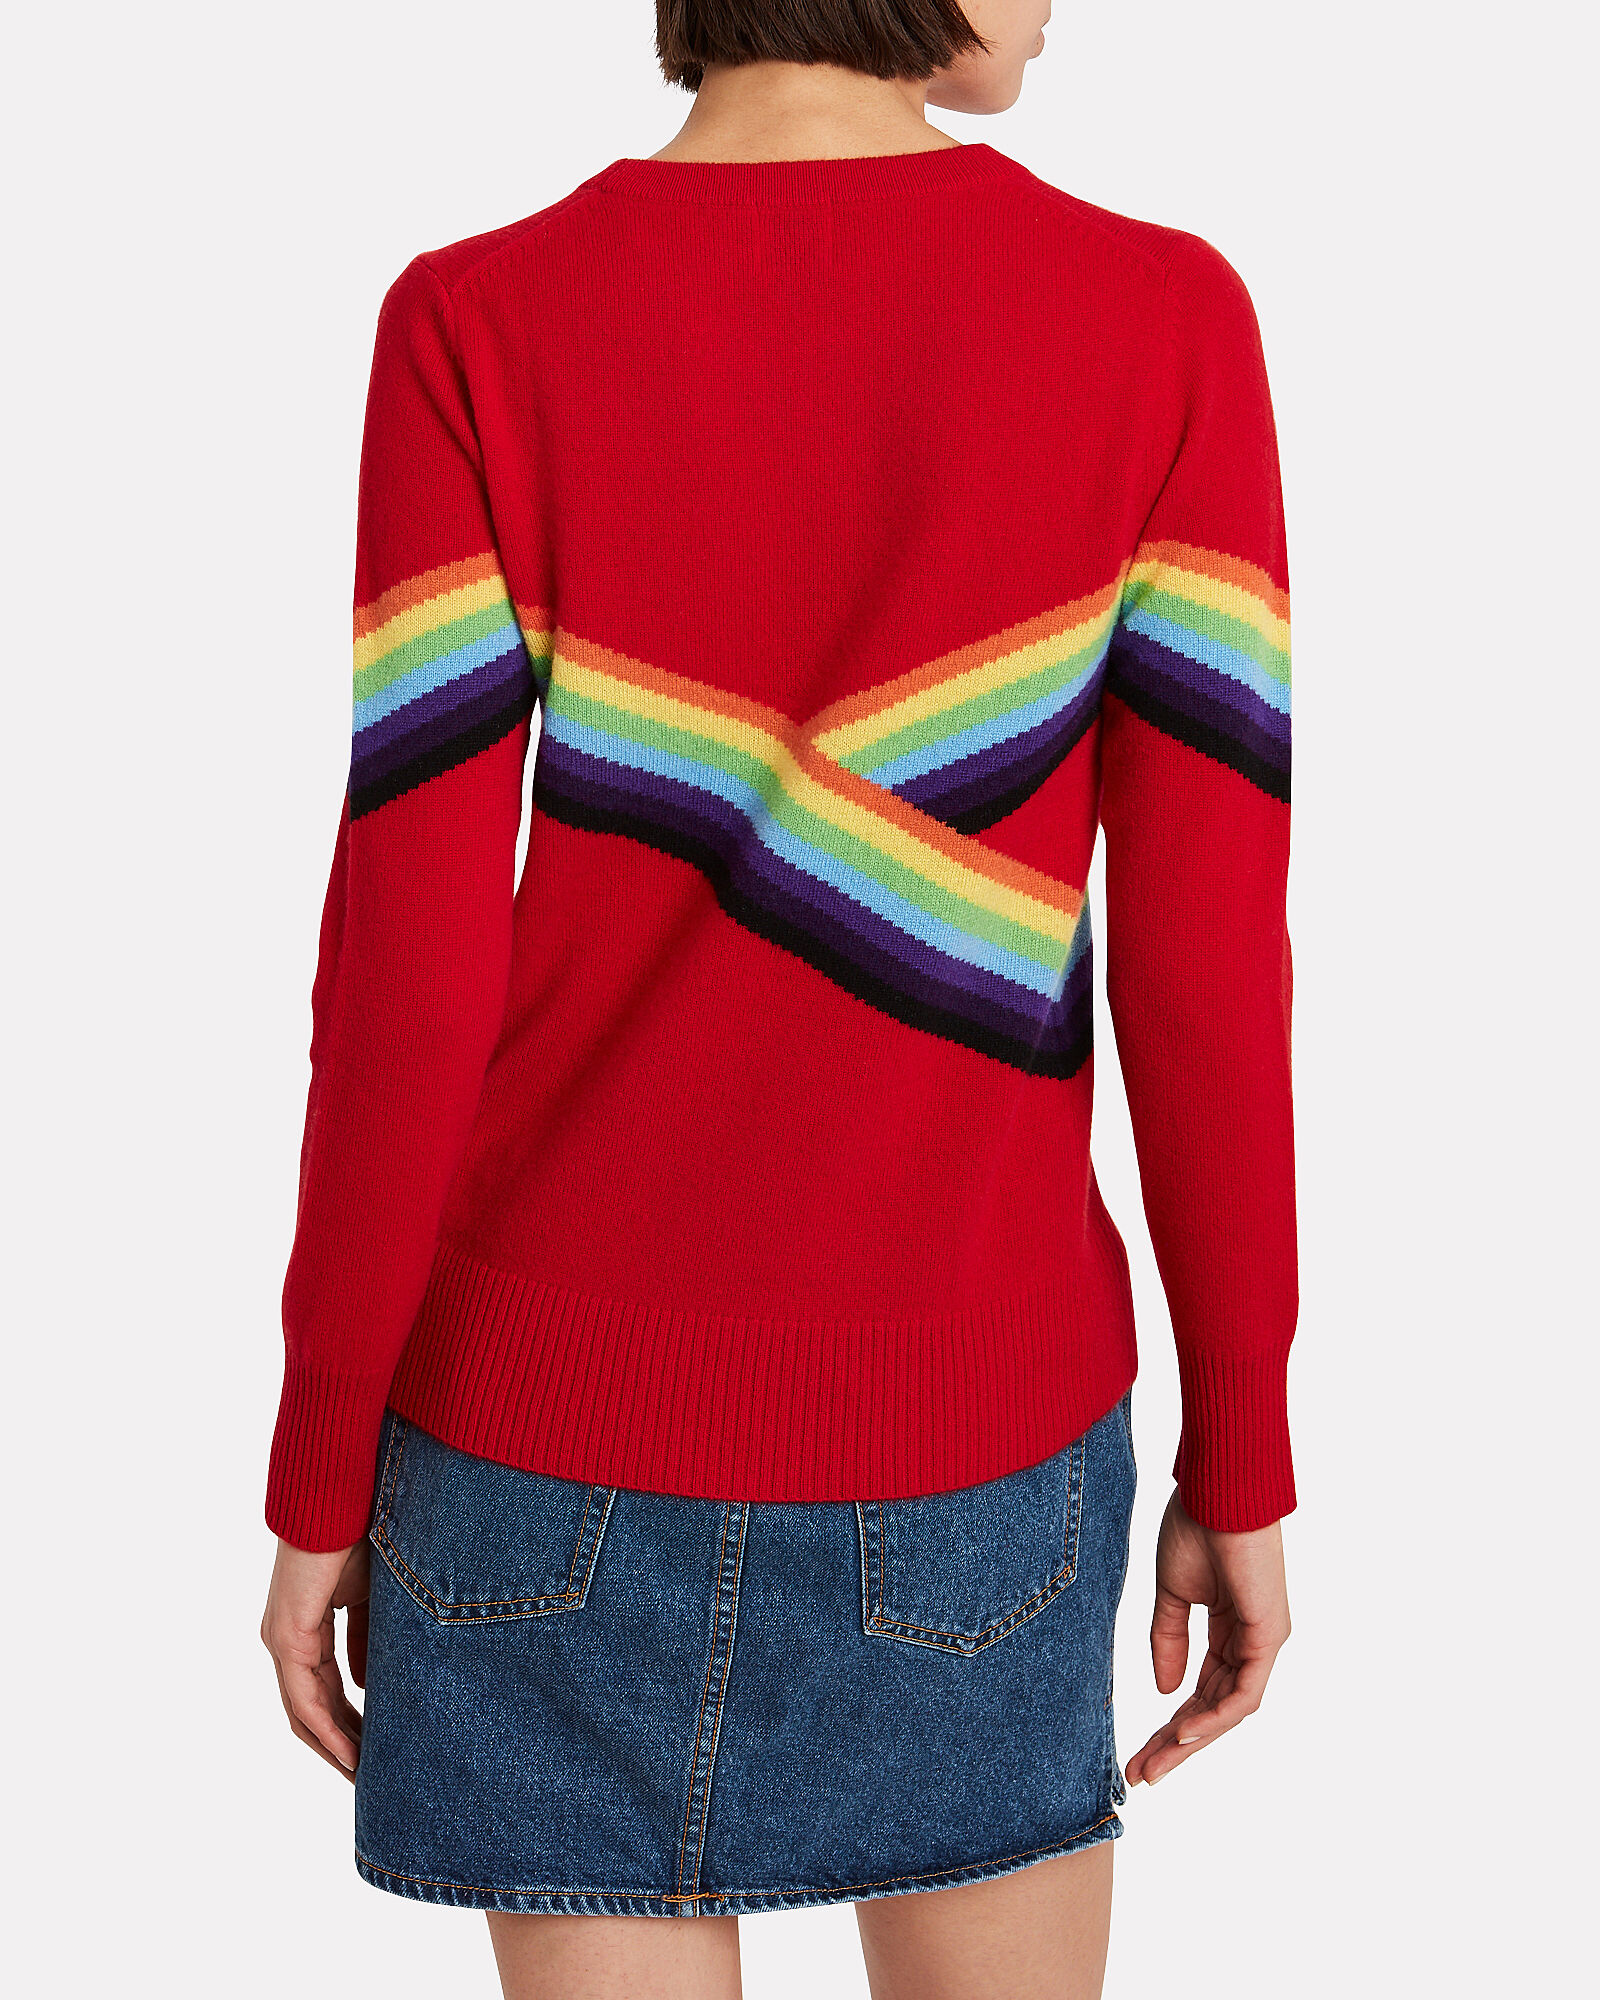 Beatrice Rainbow Crewneck Sweater, RED, hi-res